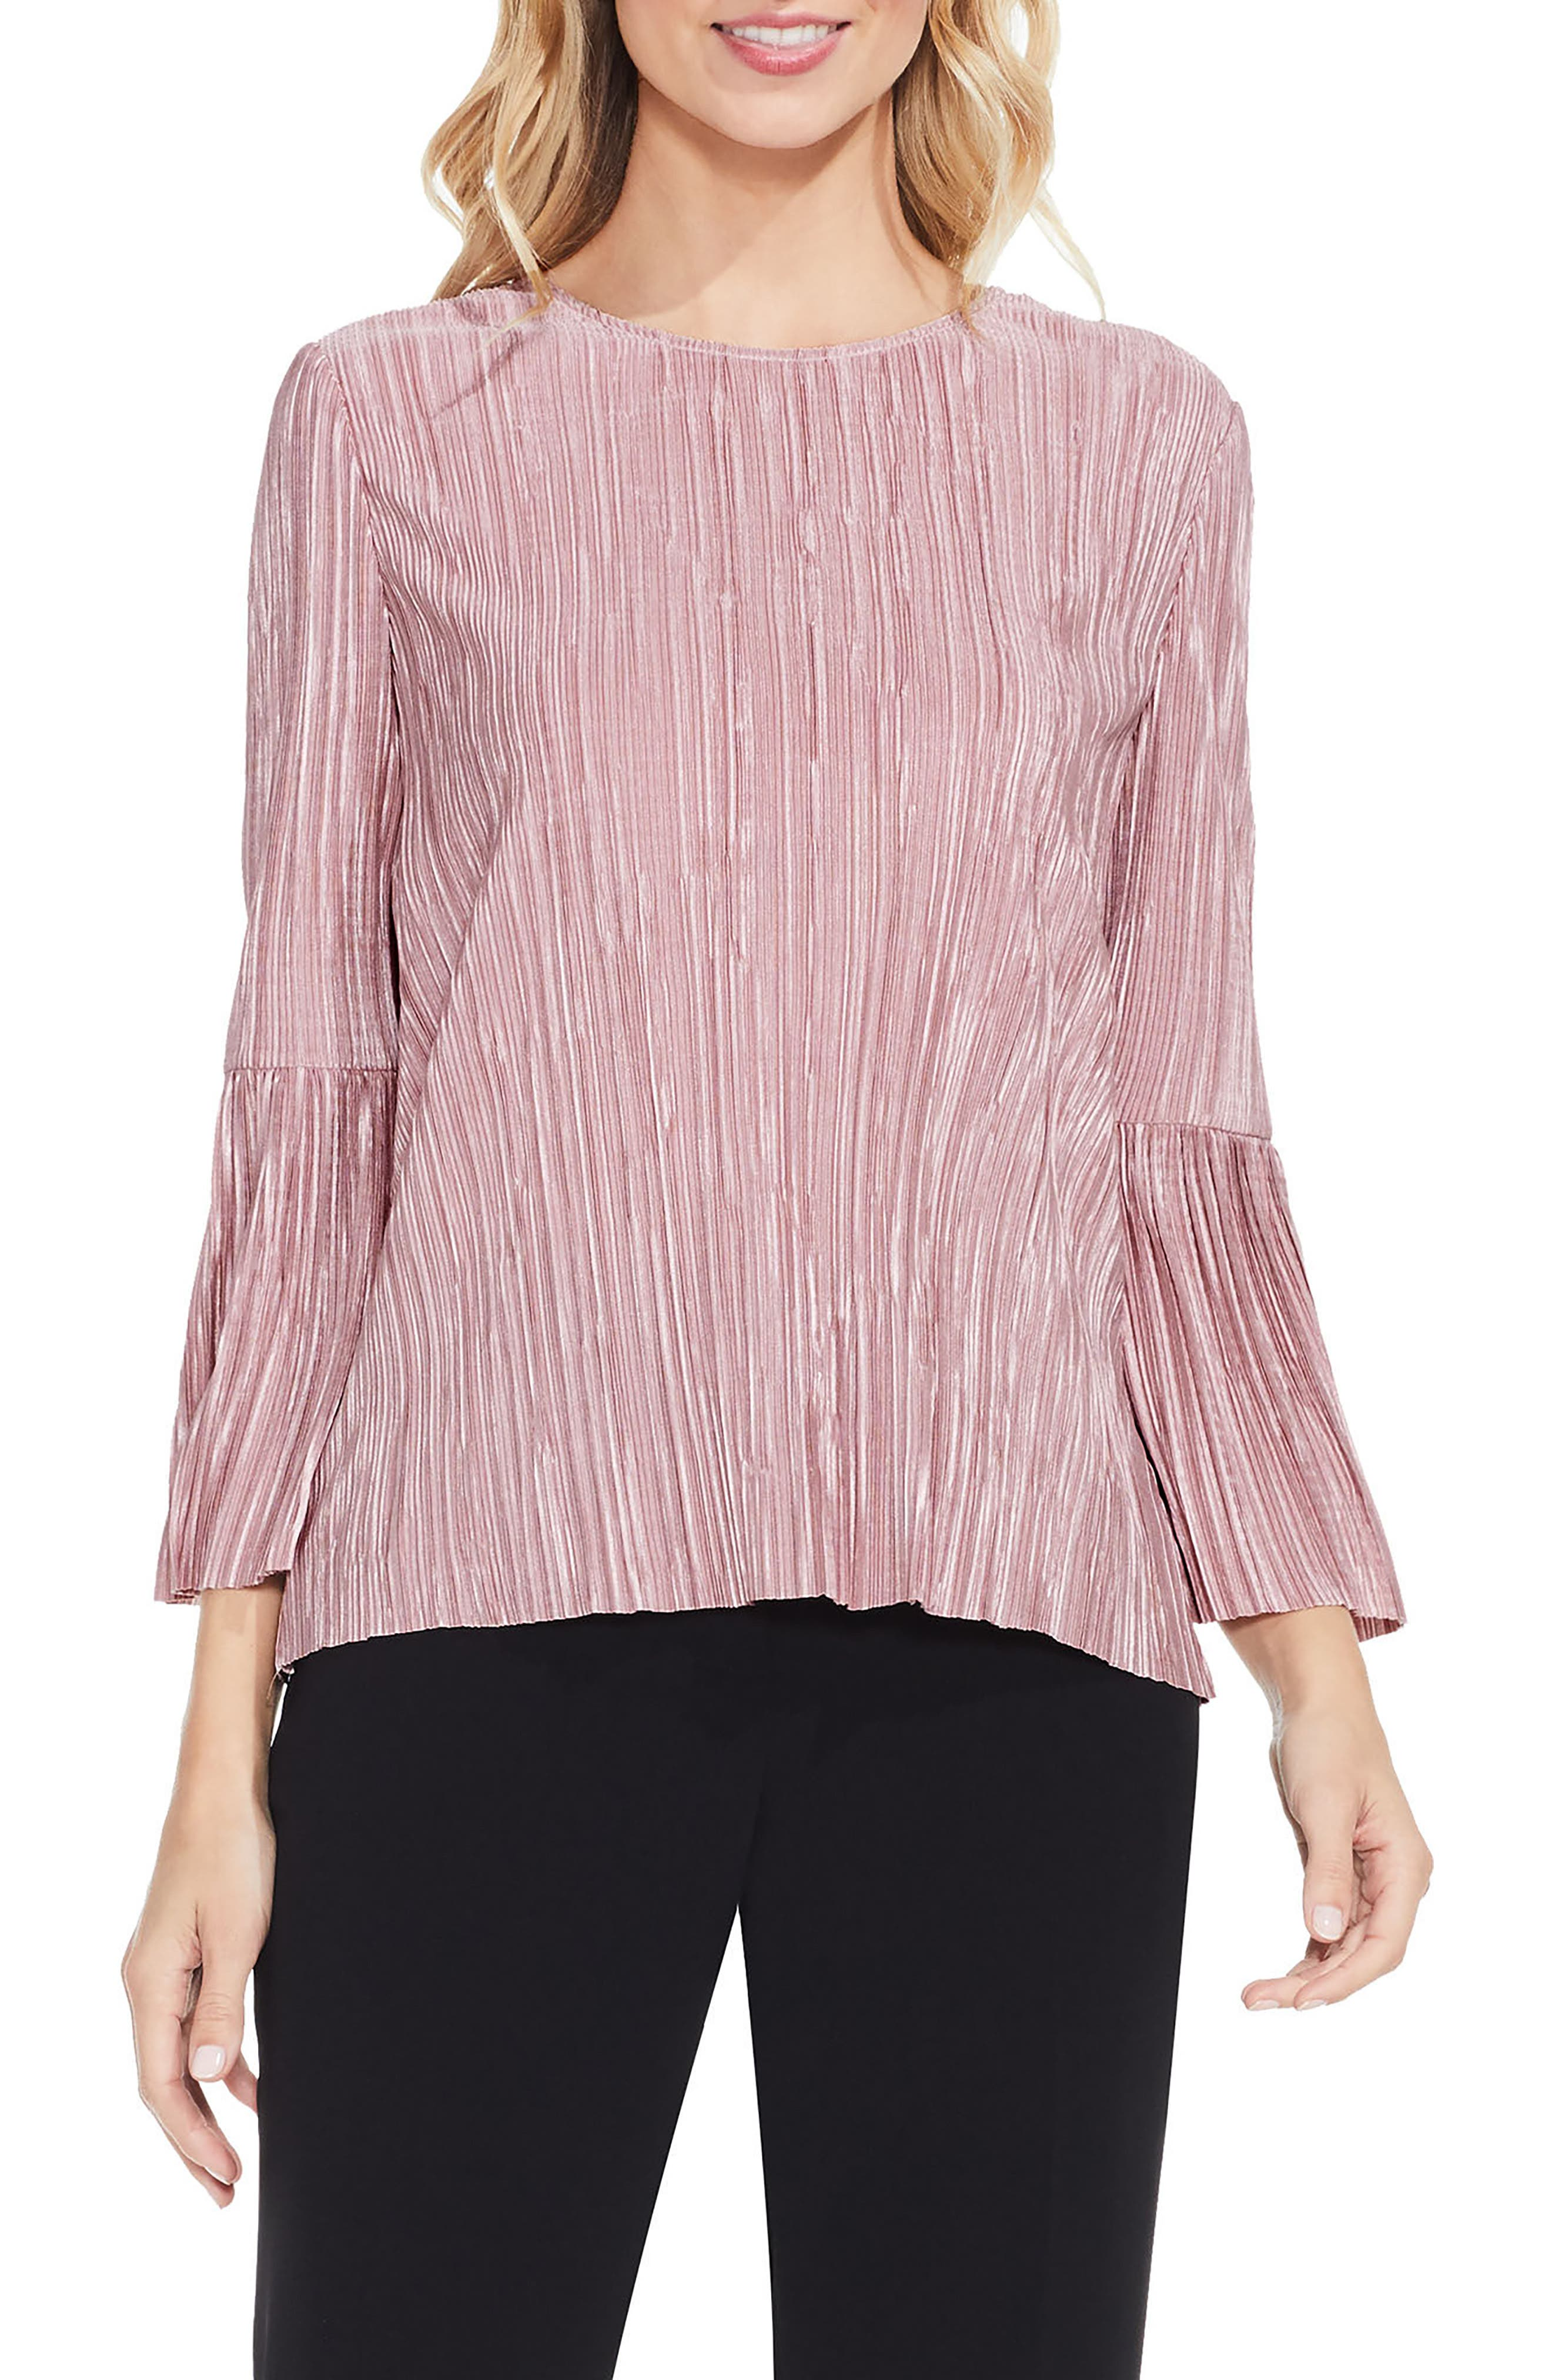 VINCE CAMUTO Pleated Knit Top